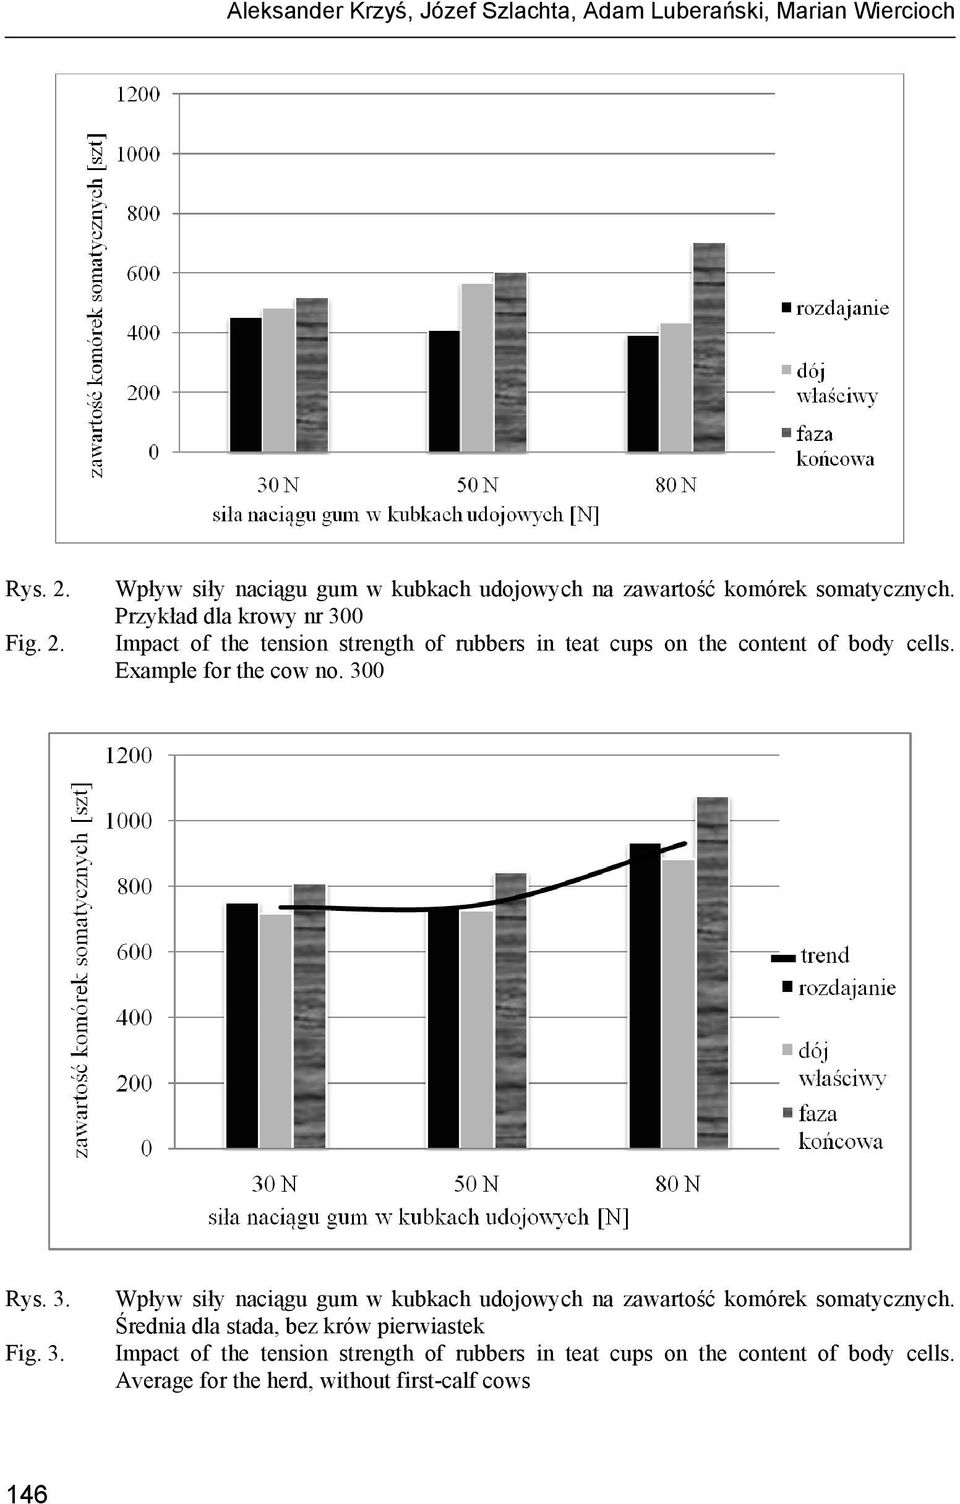 Przykład dla krowy nr 300 Impact of the tension strength of rubbers in teat cups on the content of body